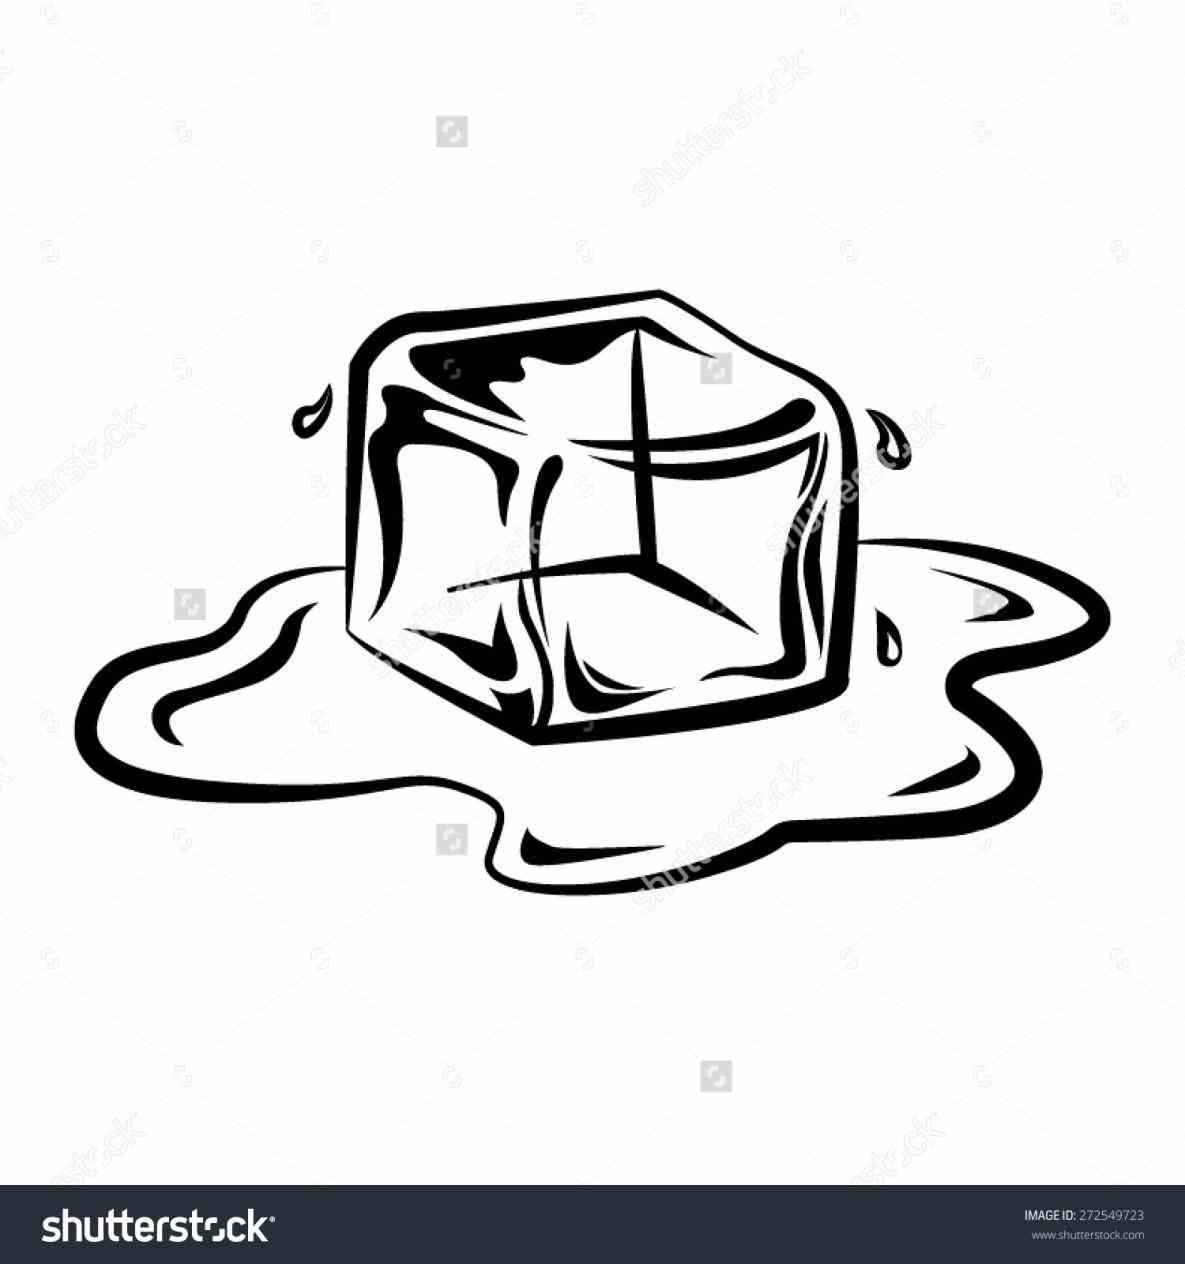 Loading clipart black and white Ice s cube download black